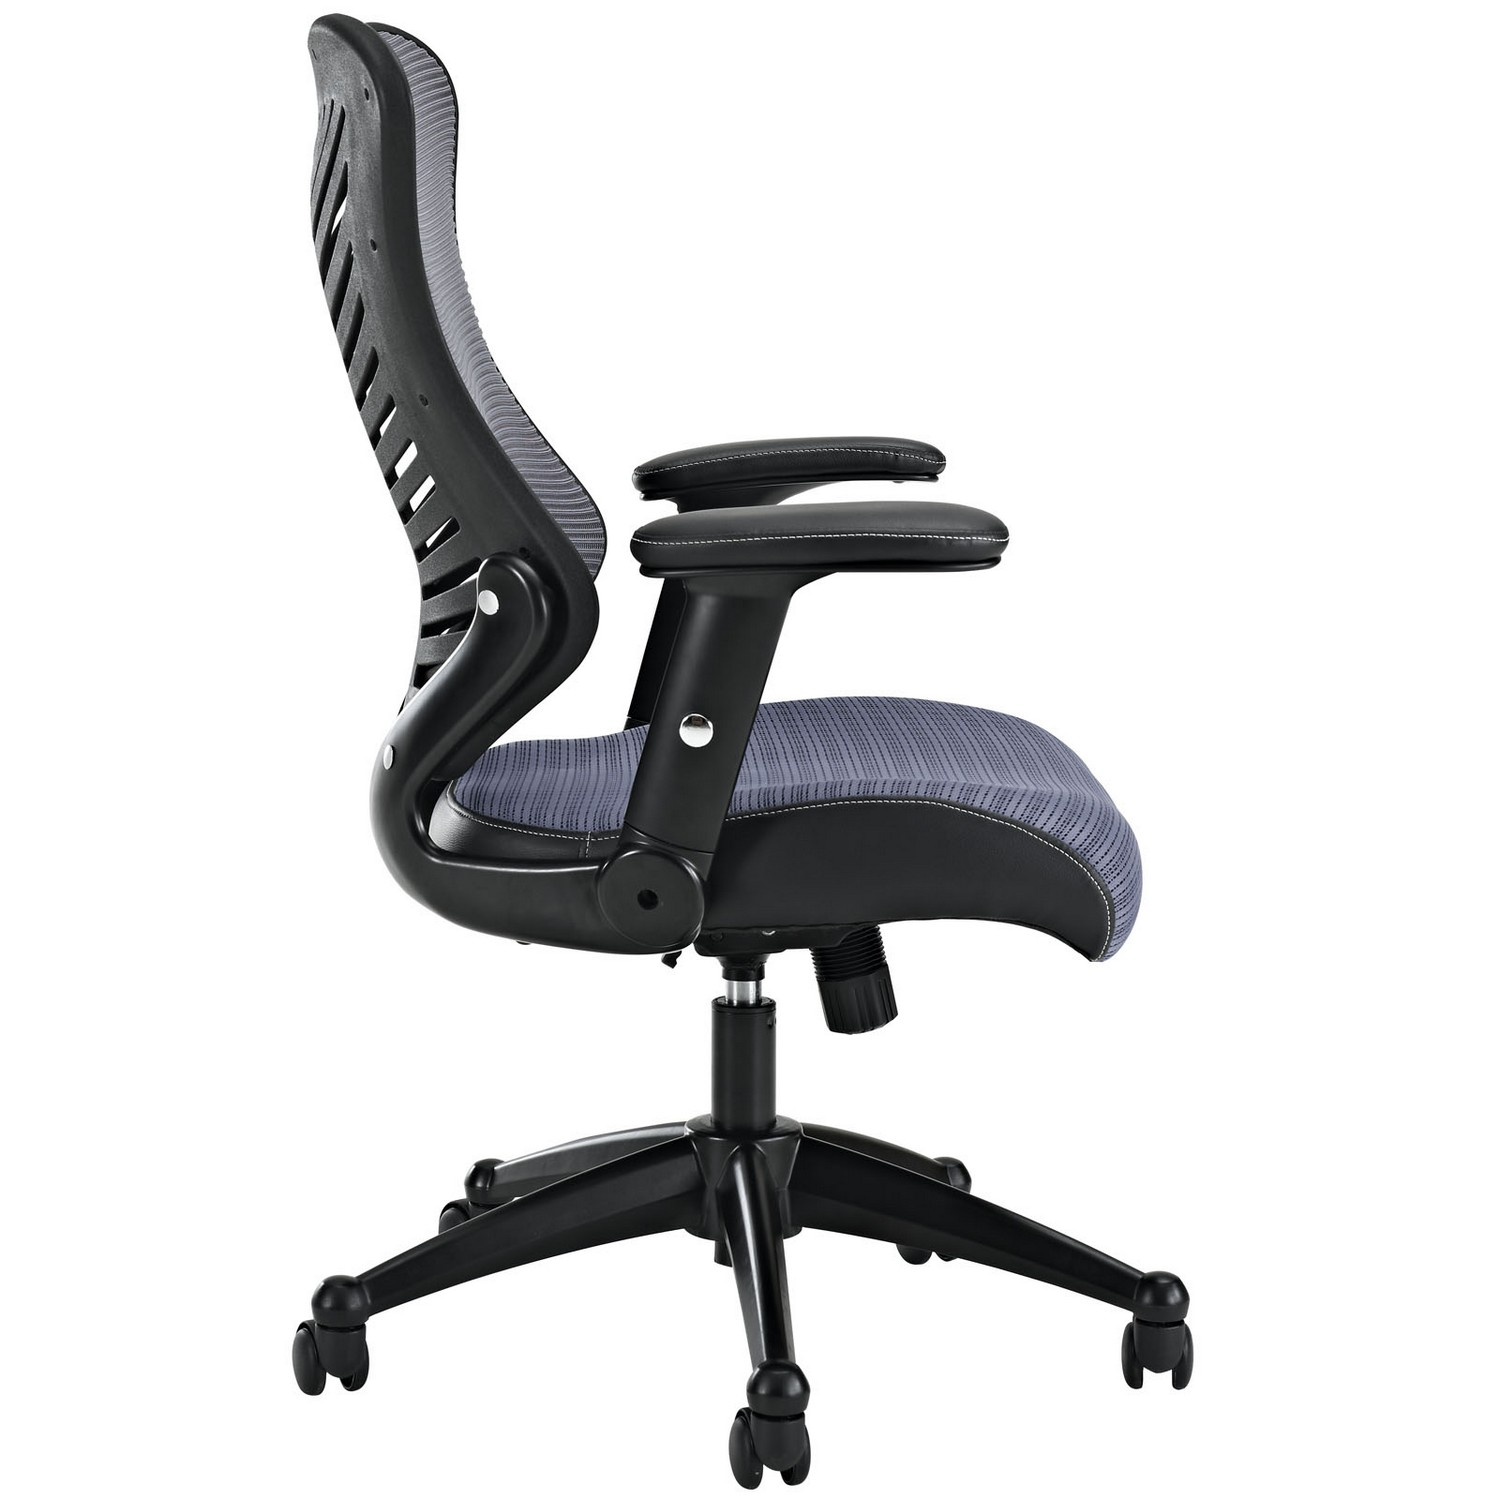 Modway Clutch Office Chair - Gray